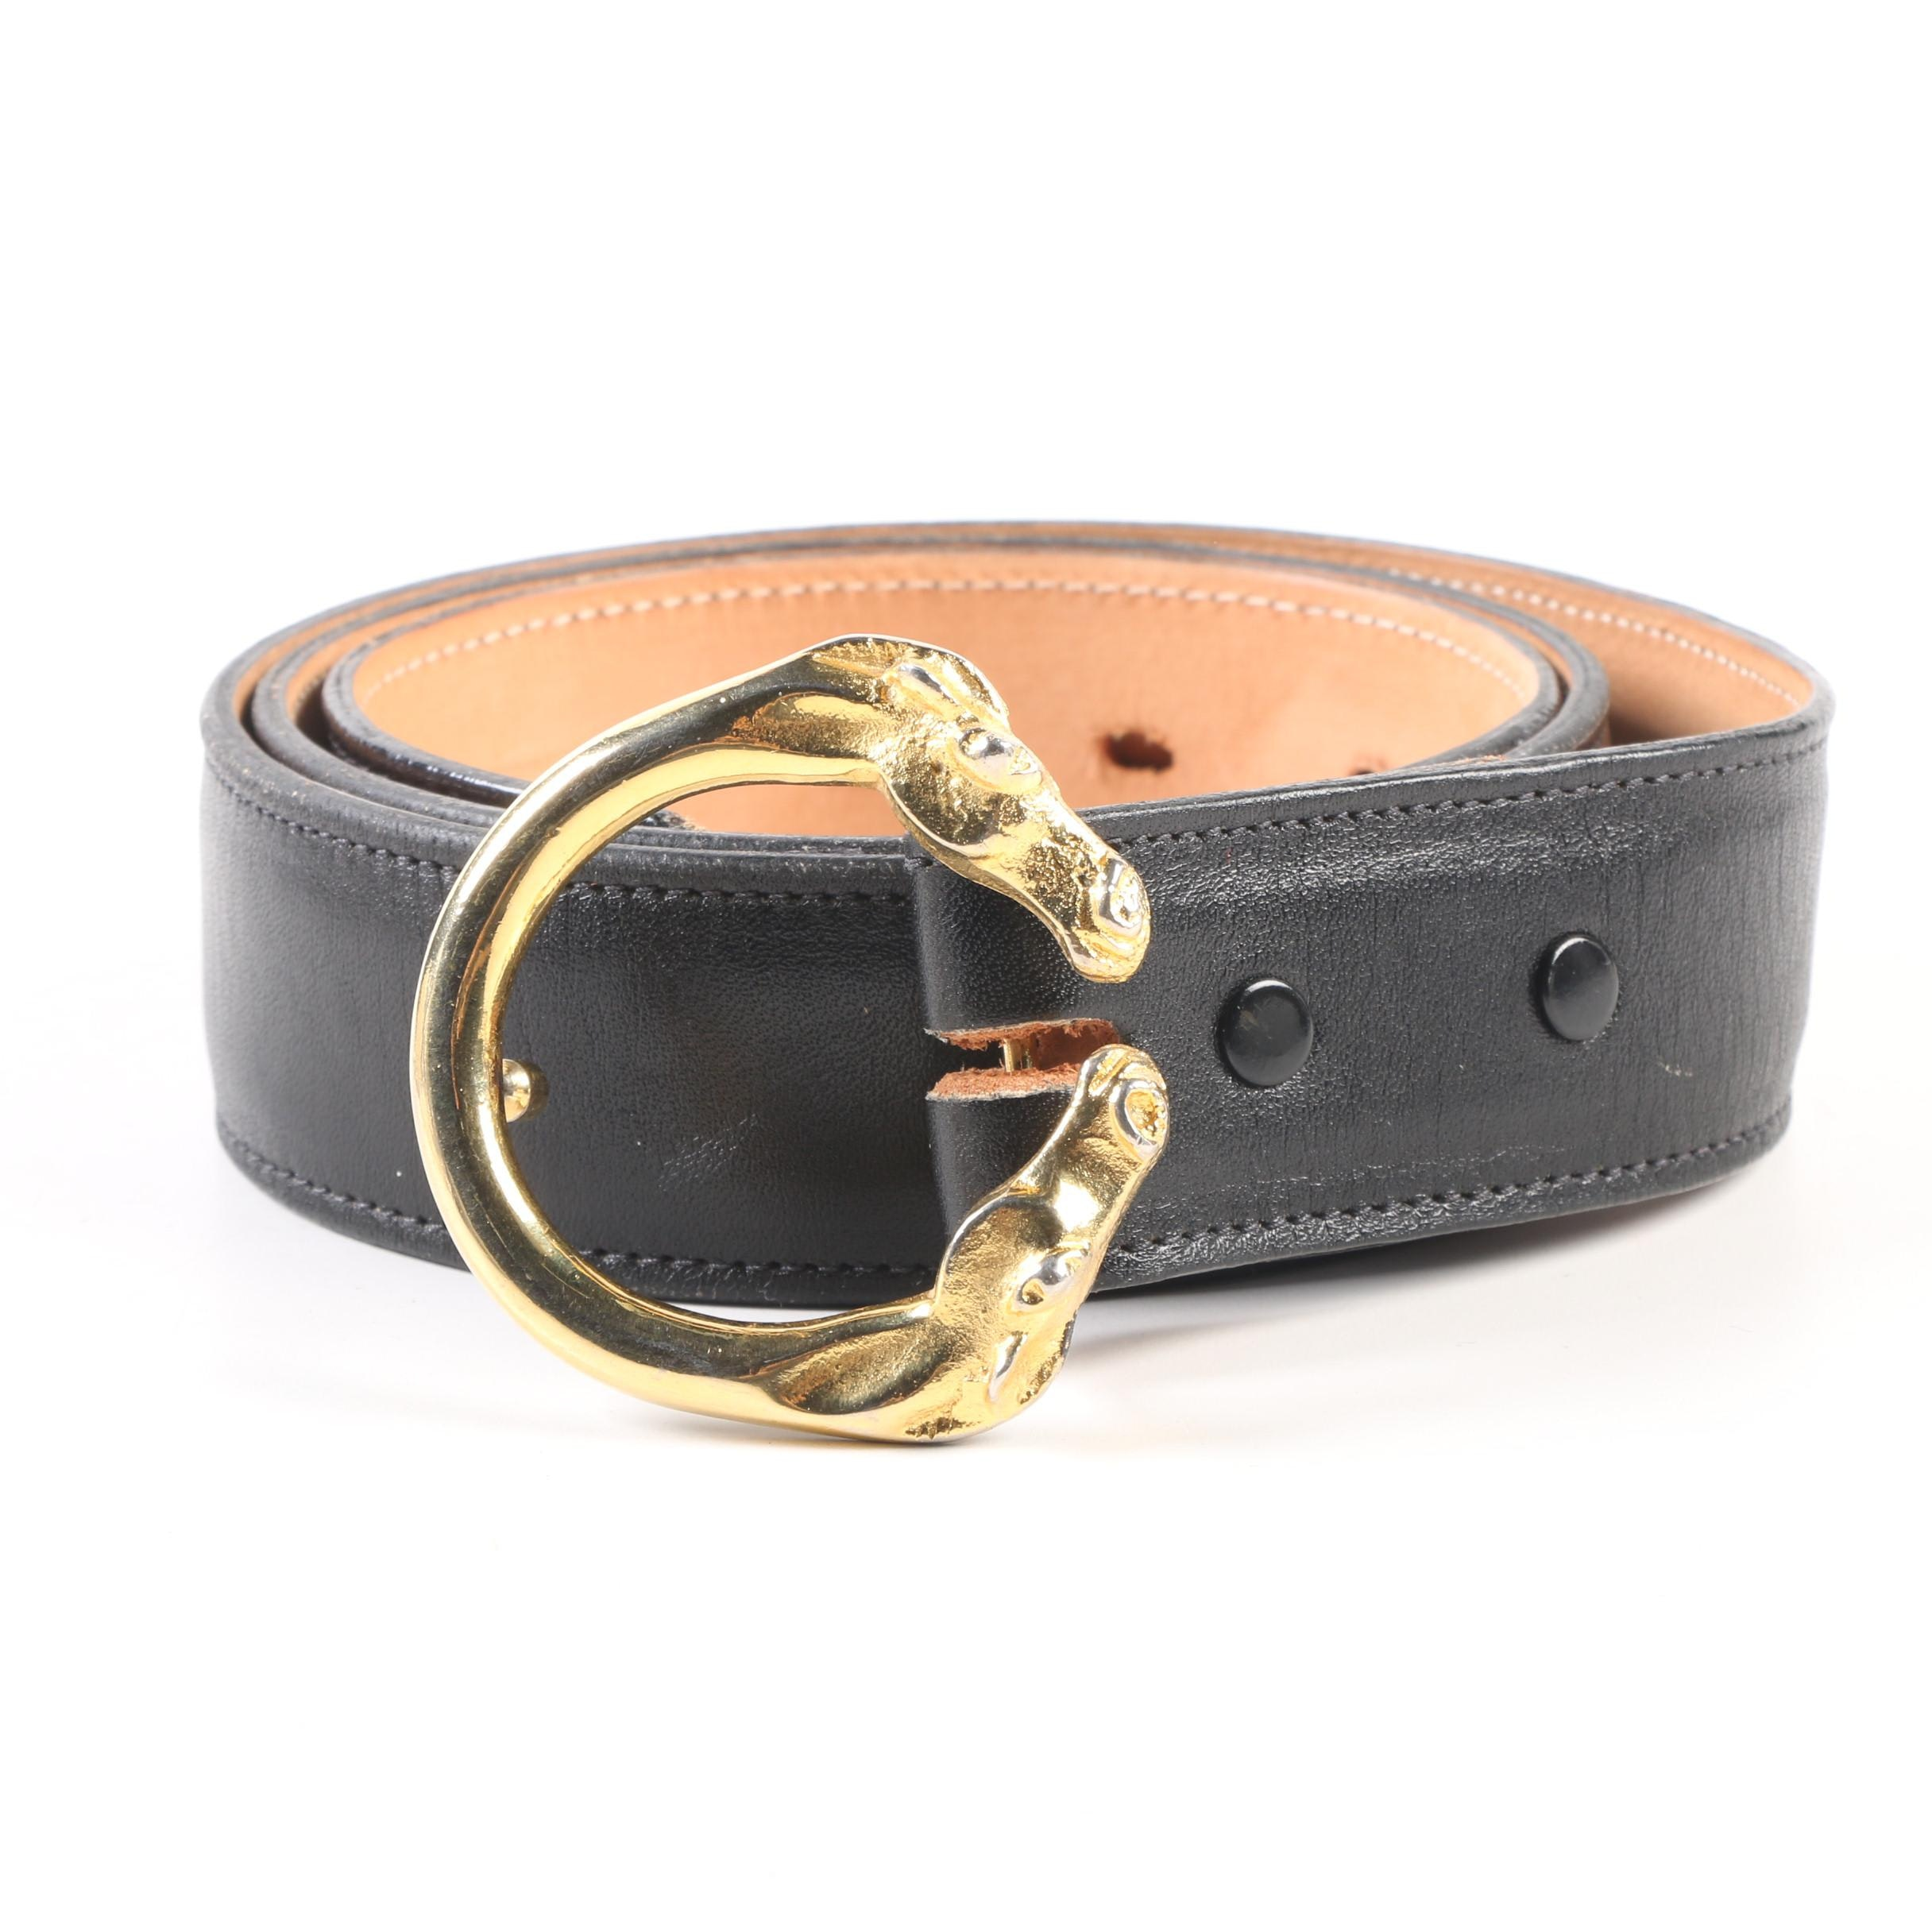 Tony Lama Gold Label Black Leather Belt with Horse Ring Buckle